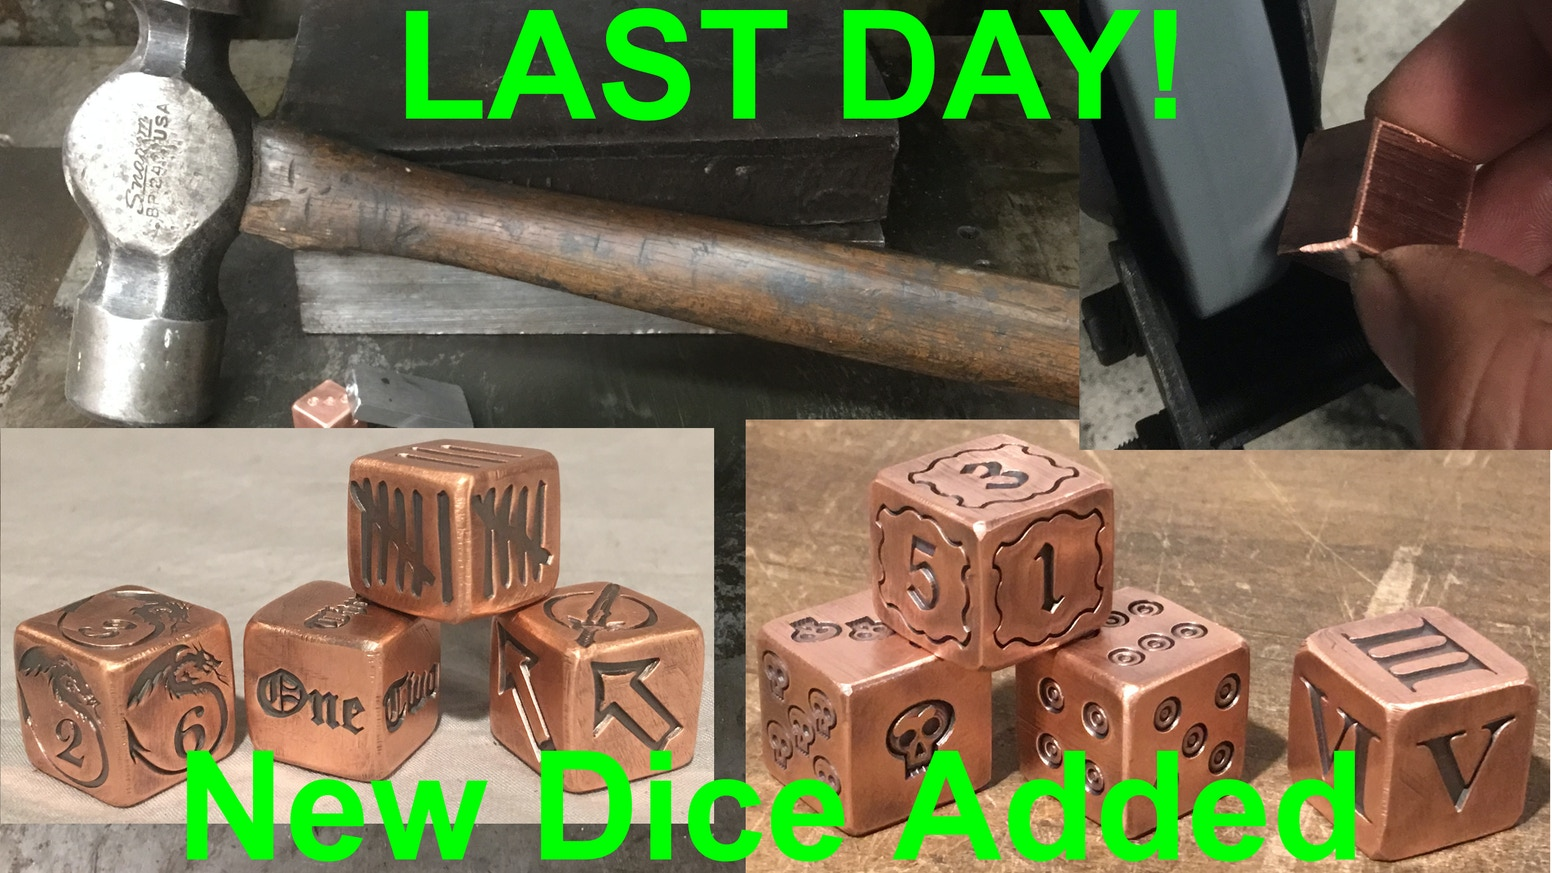 New Designs Added! Dragon design, Scatter die, Tally Marks & Lettered dice! Handmade SOLID Copper Metal! Quality feel, smooth roll!